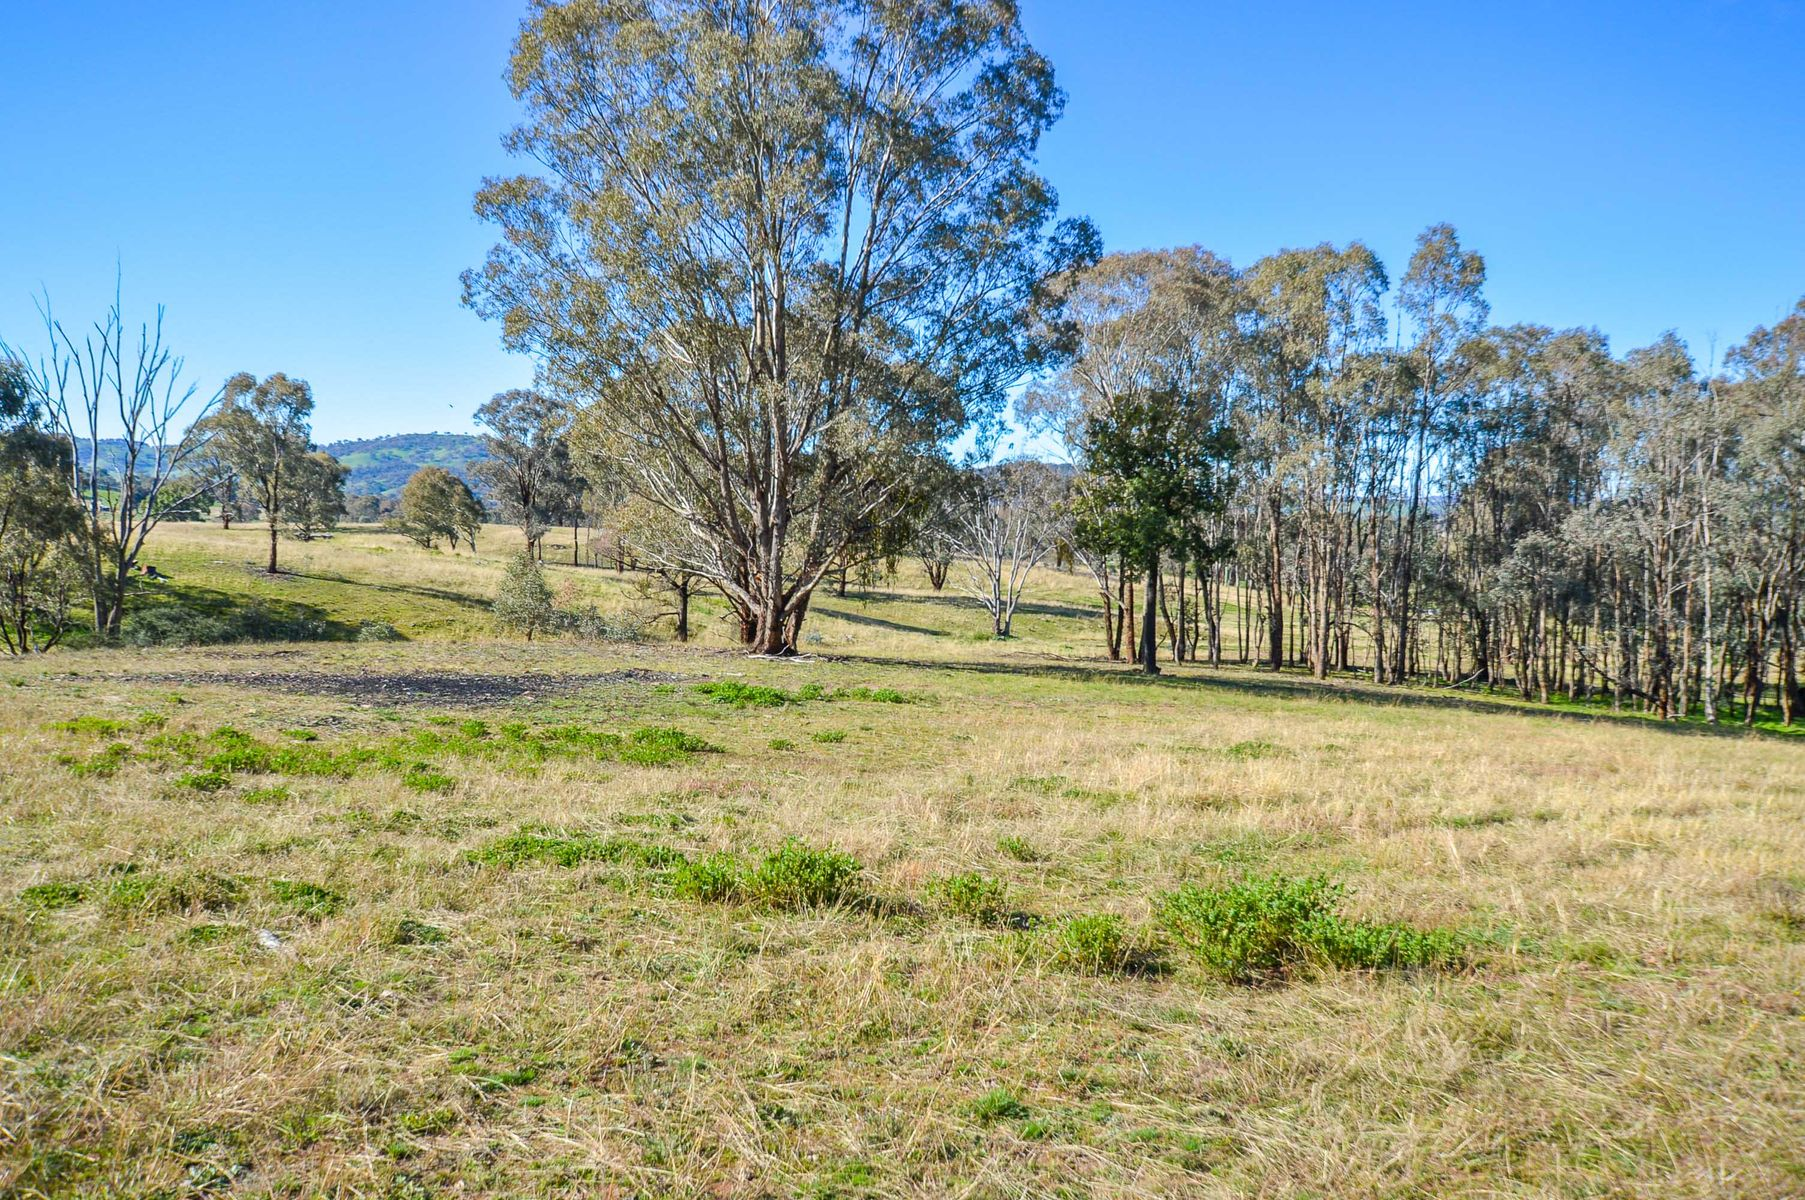 Lots 7-9, 206 Lesters Lane, Mudgee, NSW 2850